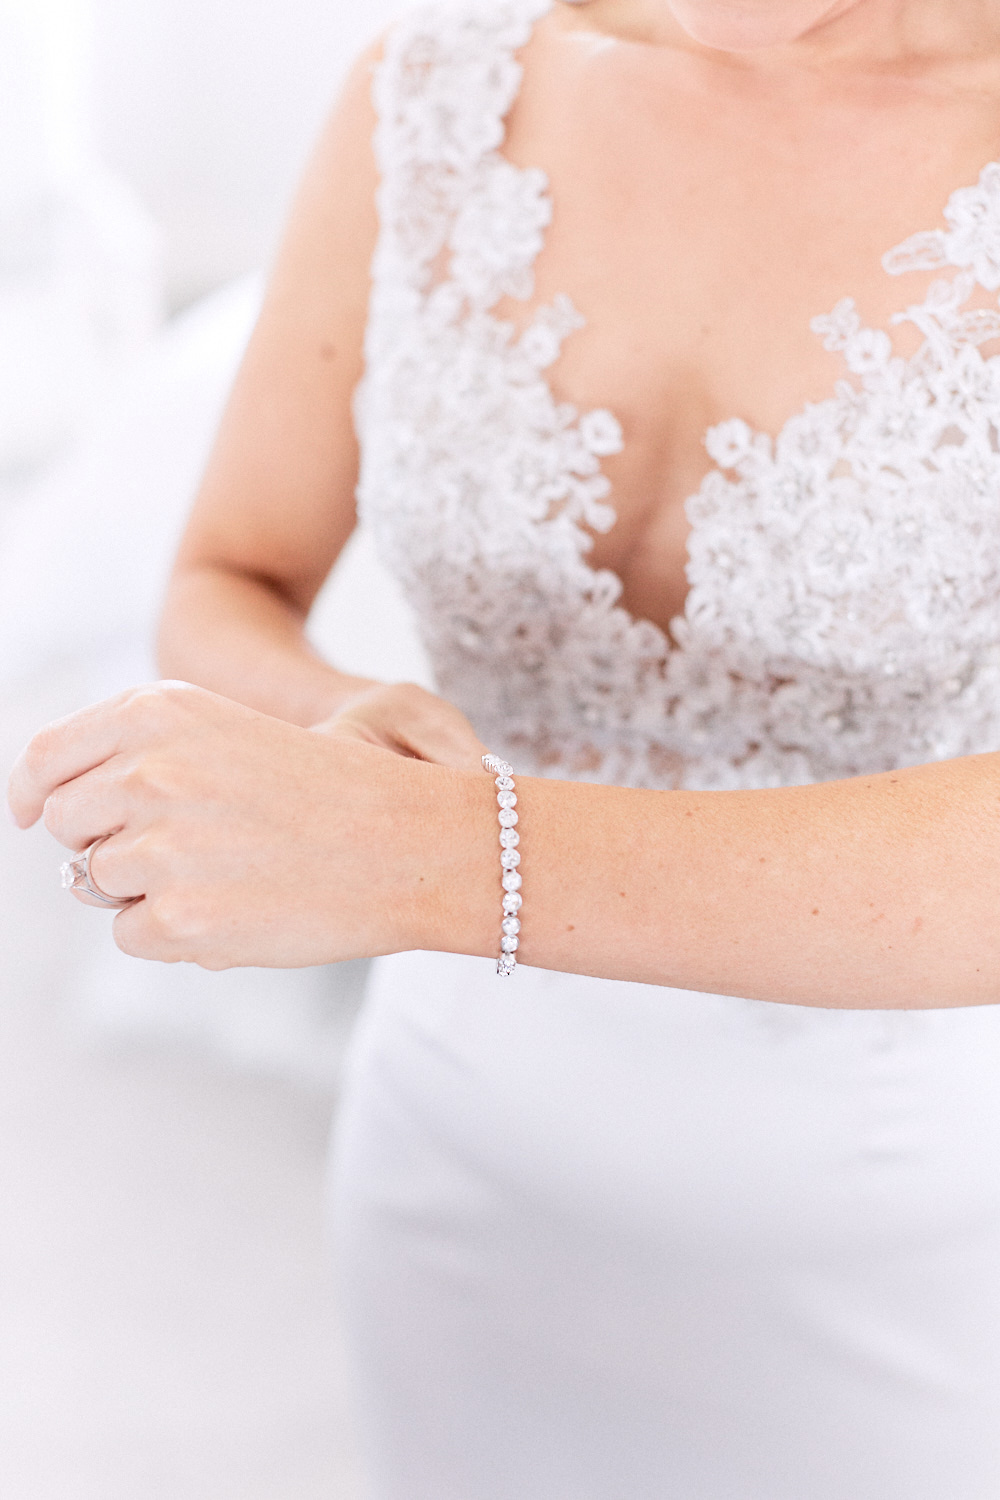 Close up of bride in dress putting on bracelet by Blue Mountains wedding photographer Joshua Witheford